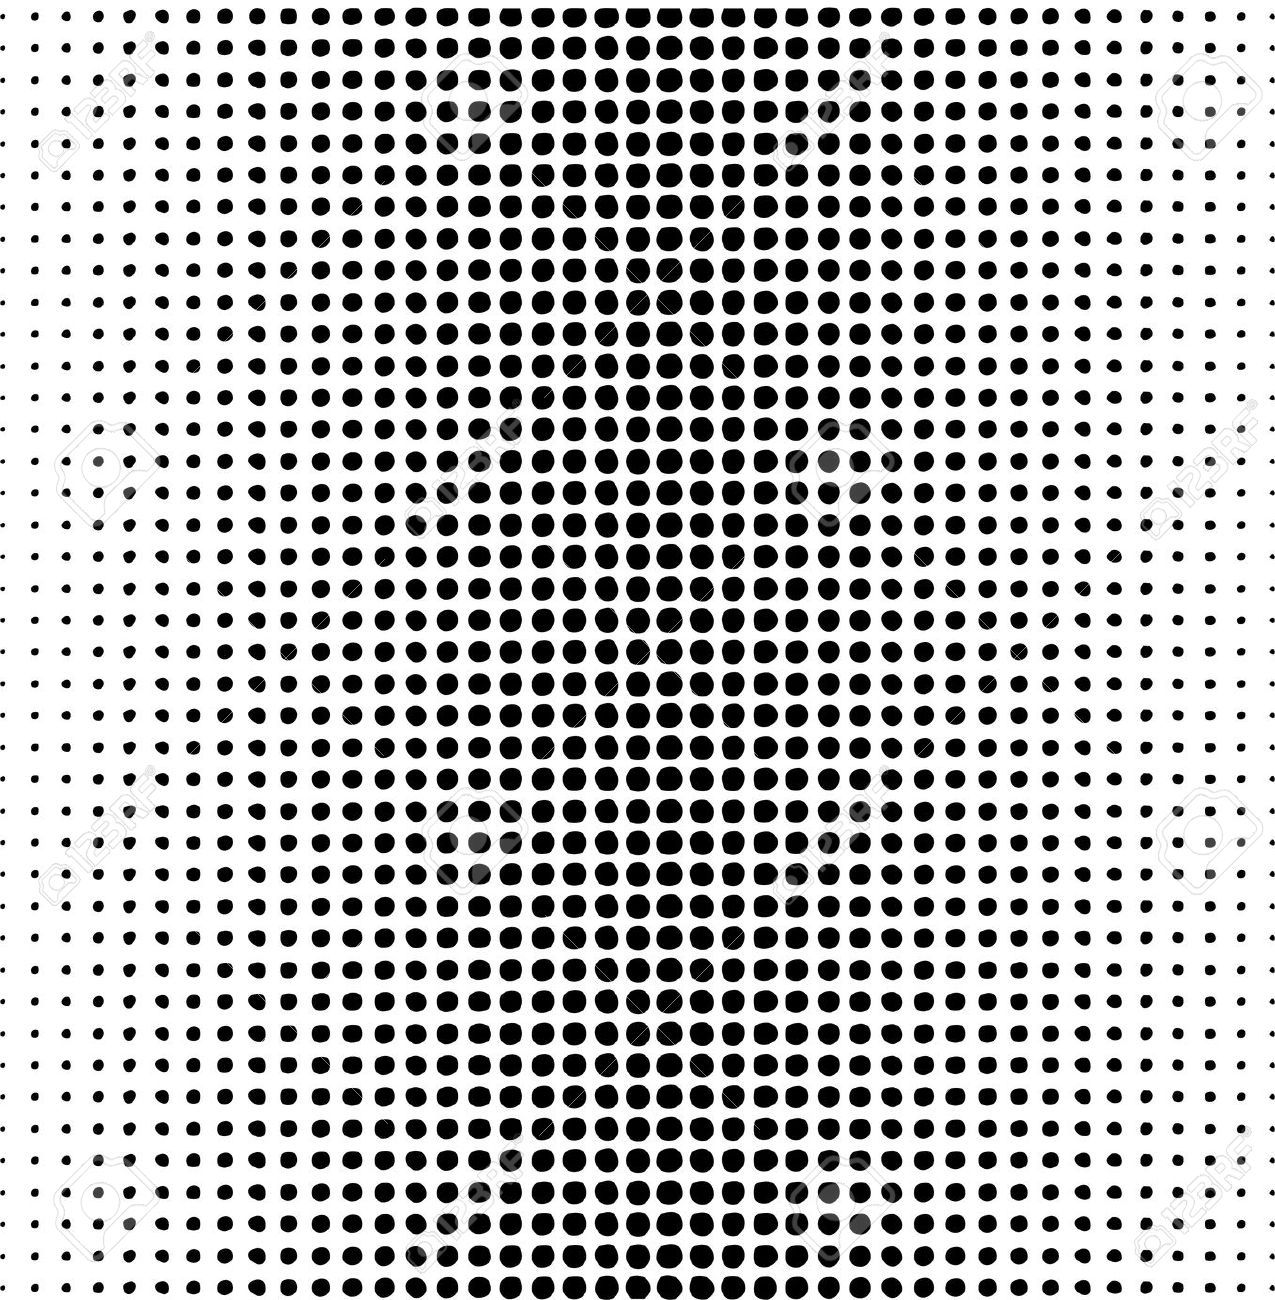 Dots Pattern On A White Royalty Free Cliparts Vectors